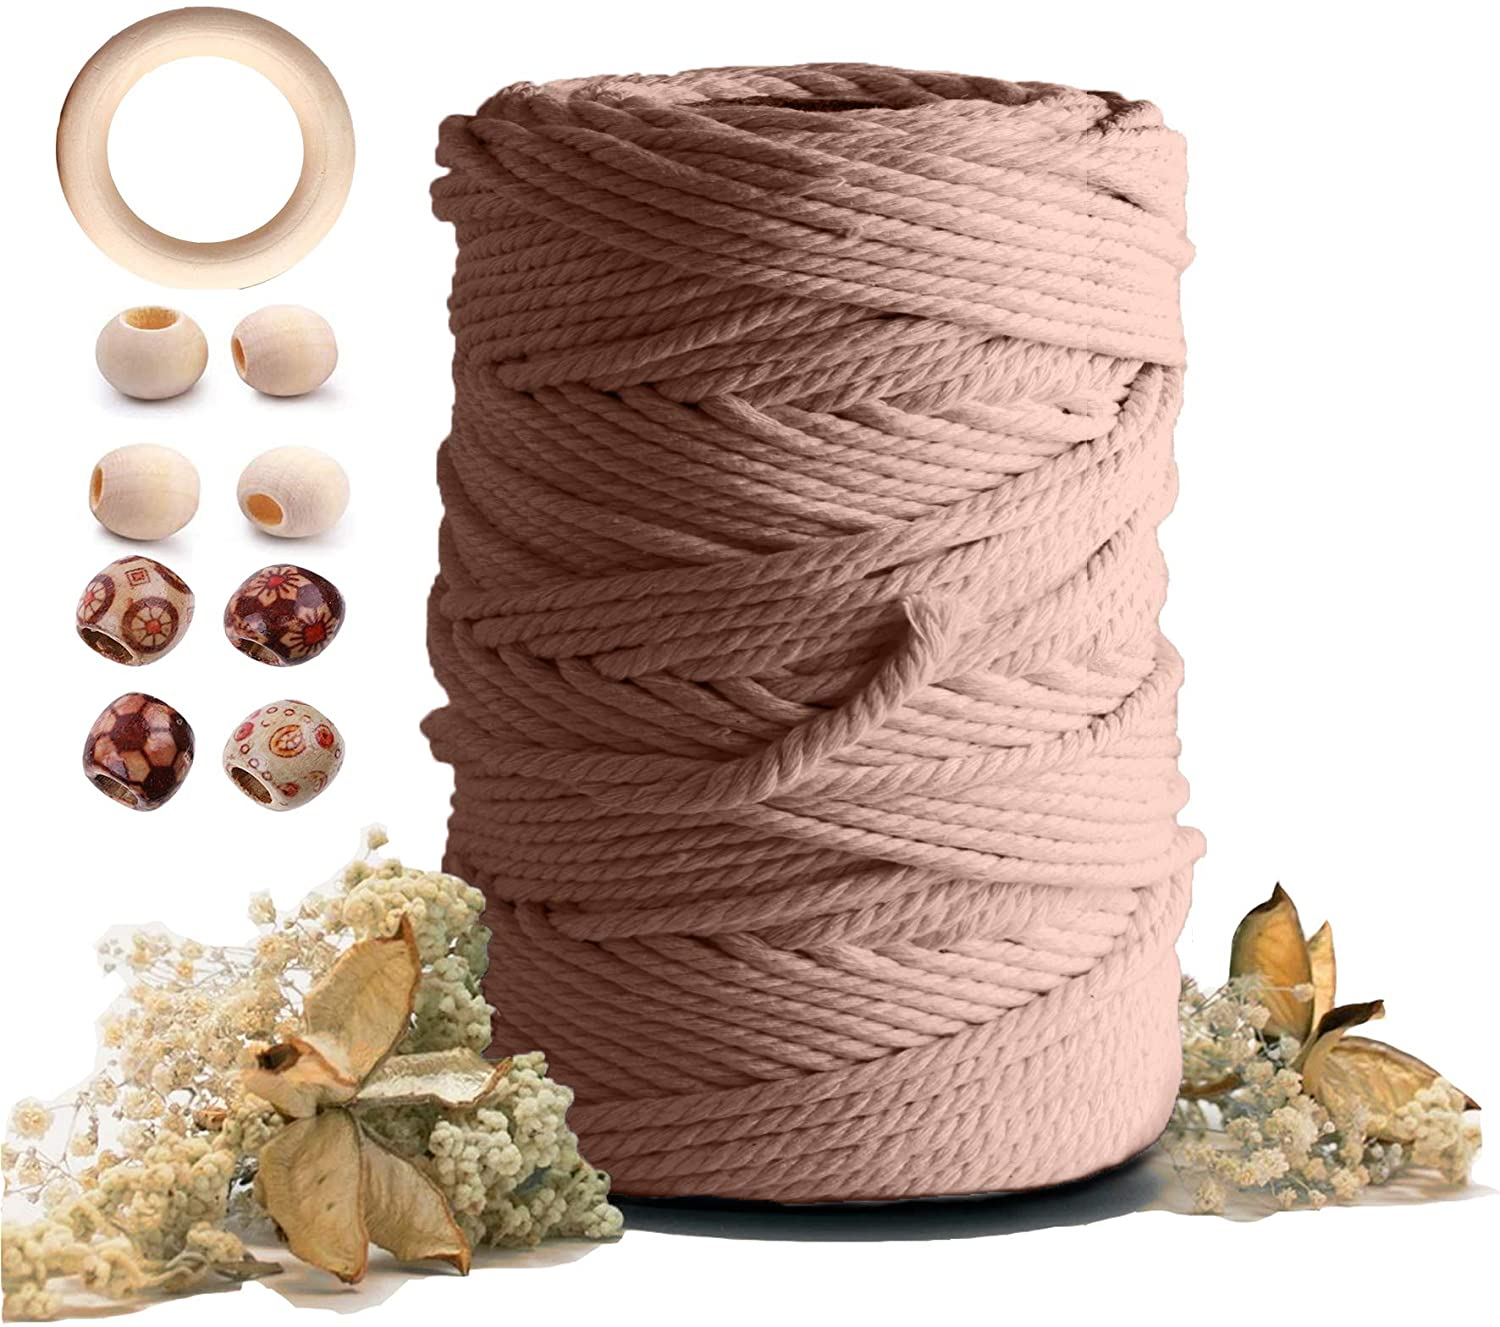 Macrame Cotton Cord 5mmx109 Yard 4 Strand,Artstudy Natural Handmade 4 Twisted Cotton Rope for Wall Hanging Weaving Tapestry DIY Craft Knitting Plant Hanger Gift Wrapping Wedding Decor(100m, Brick Red)